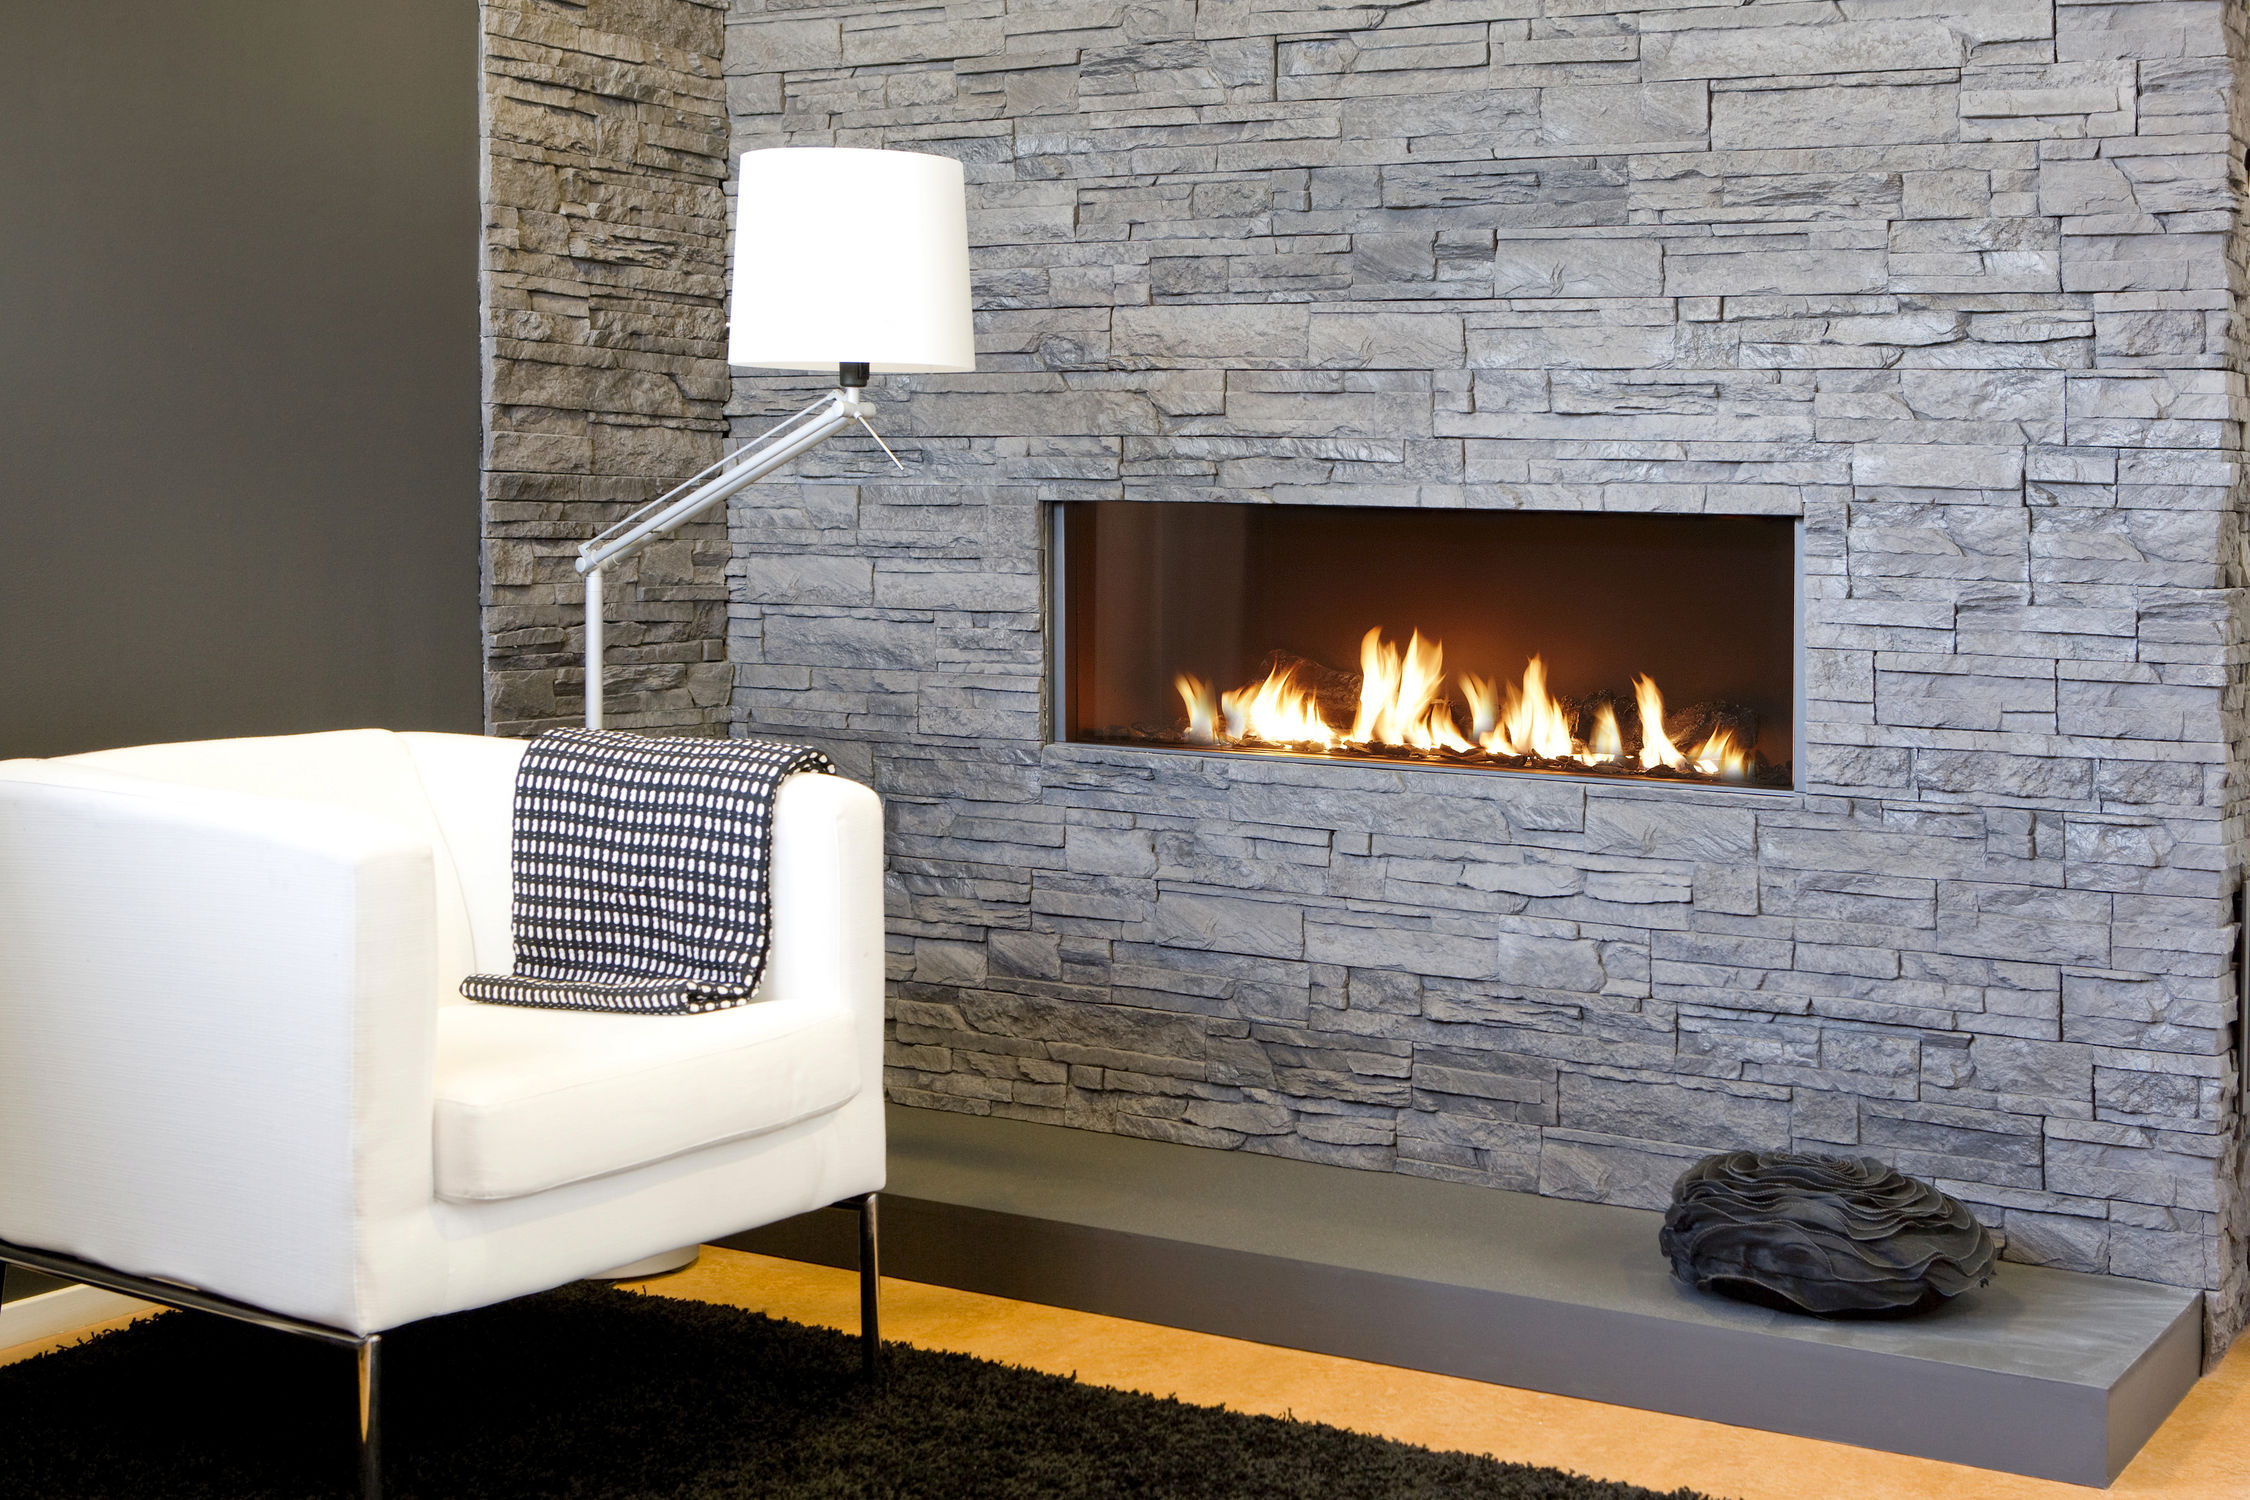 Place White Sofa and Modern Floor Lamp on Black Carpet Rug beside Stylish Stacked Stone Fireplace